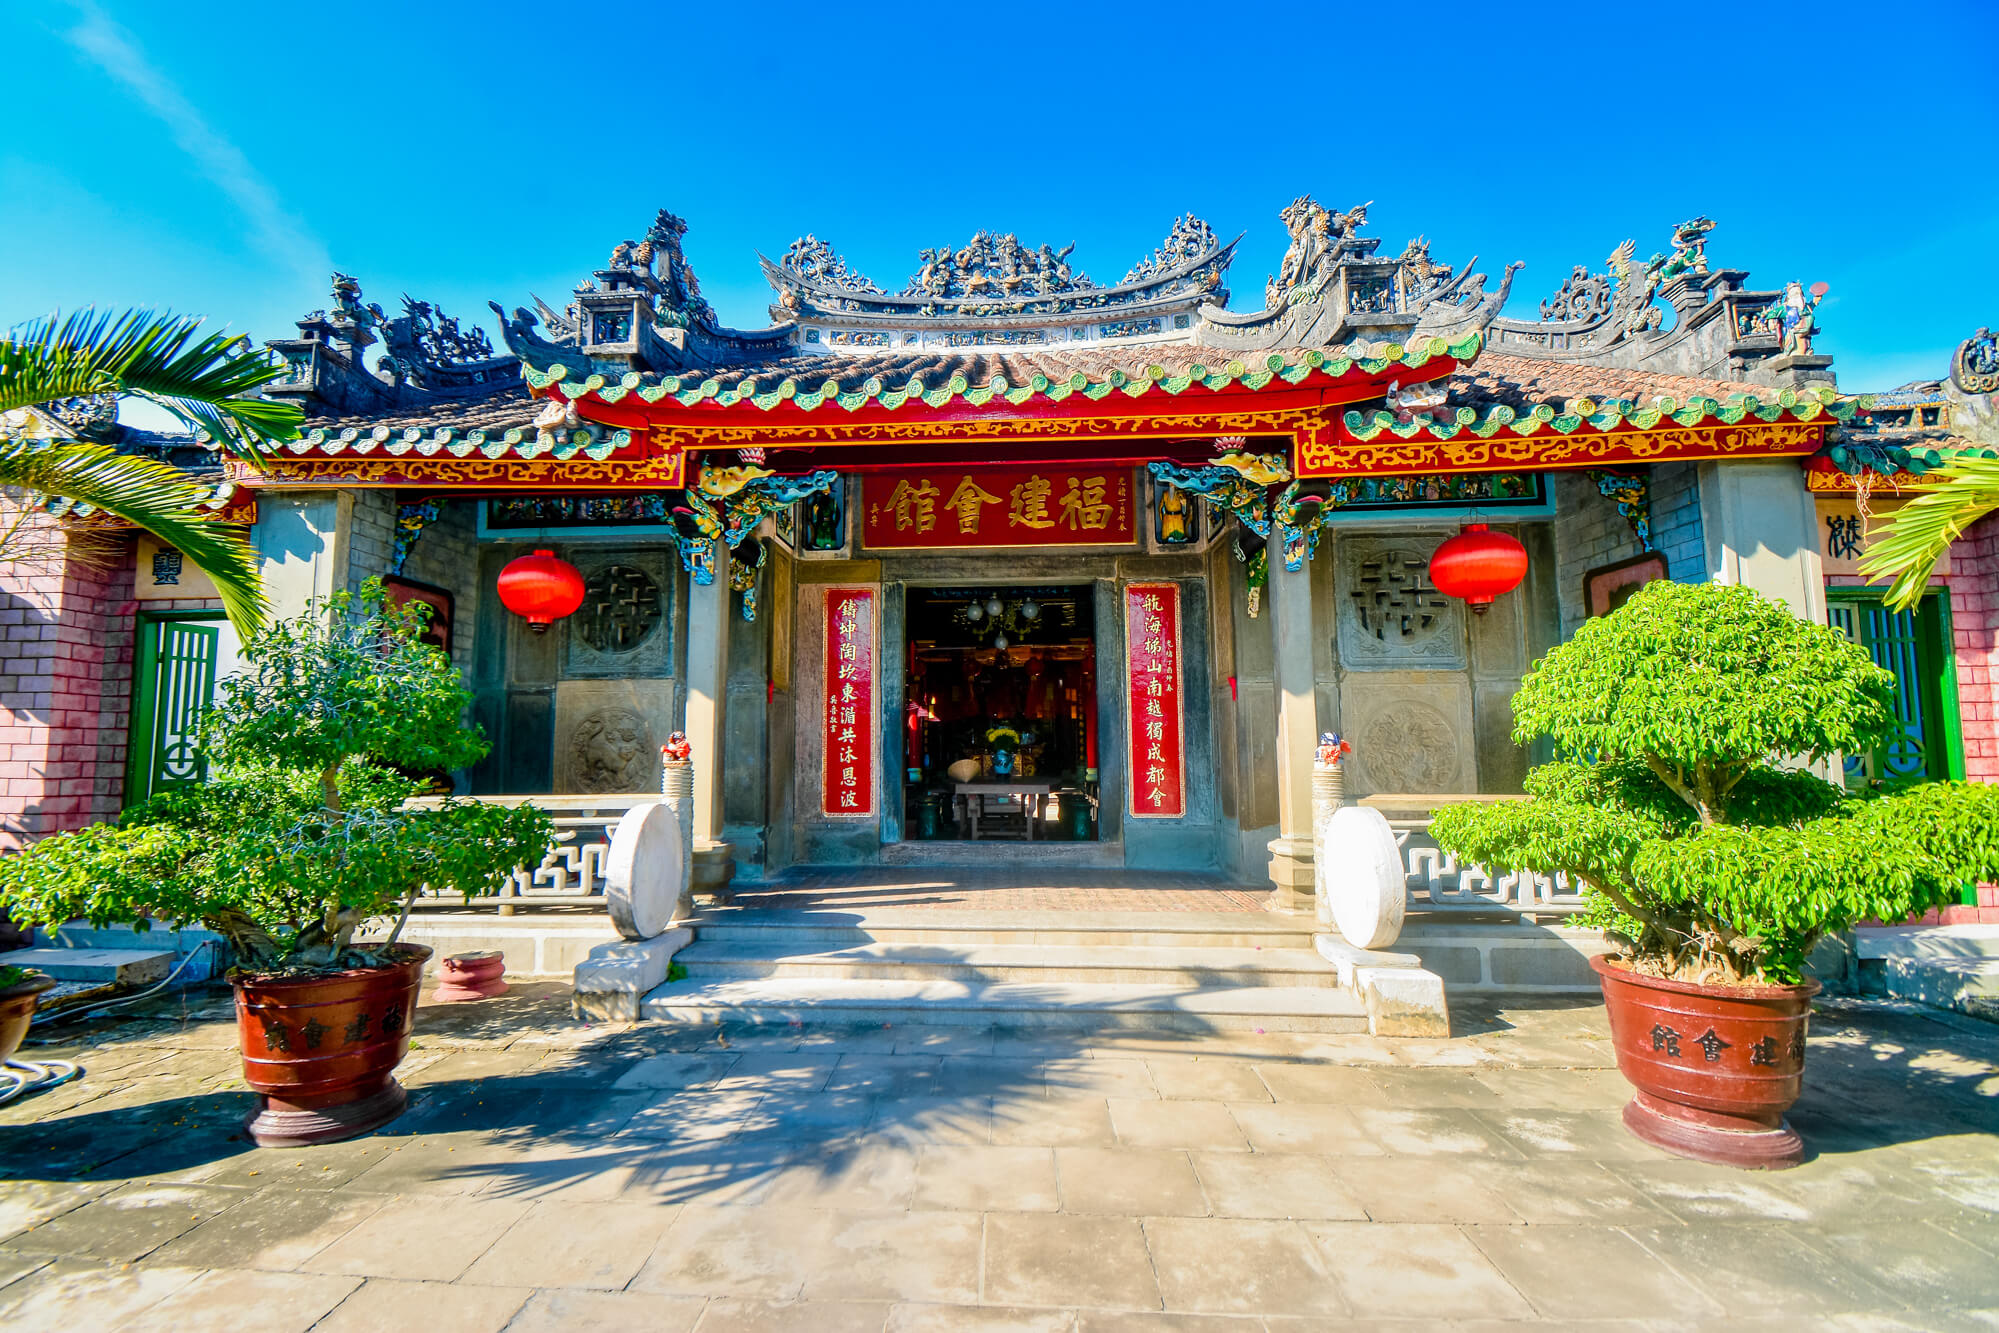 Spend time to visit as many Hoi An temples as you can